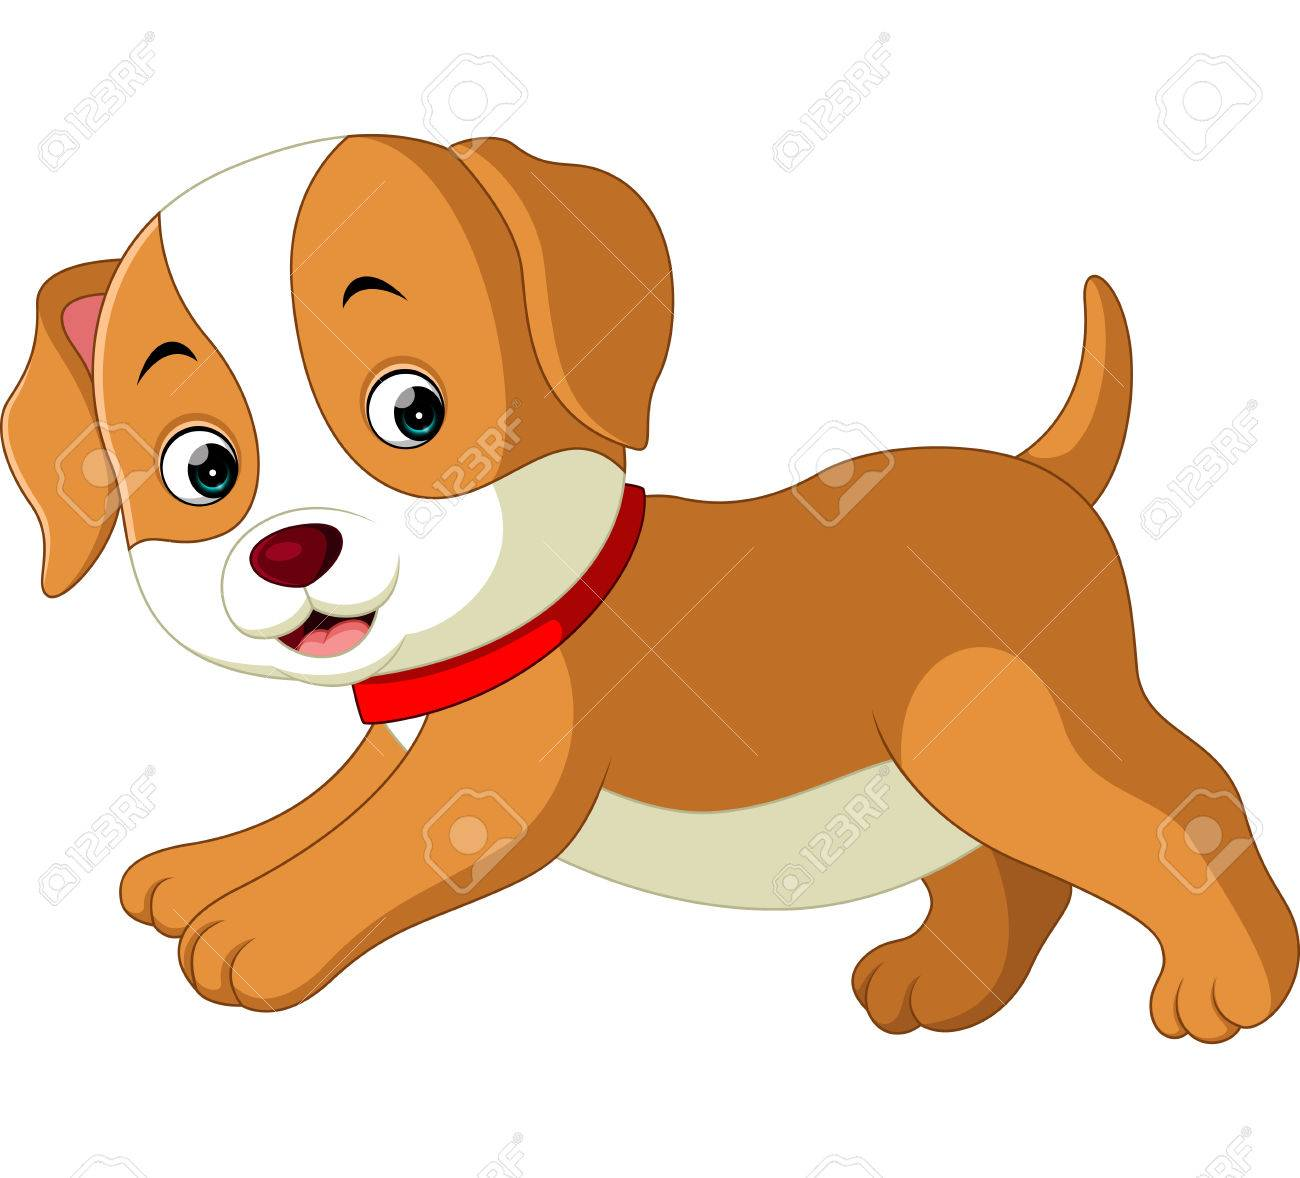 Cute Dog Cartoon Stock Photo Picture And Royalty Free Image Image 73845624